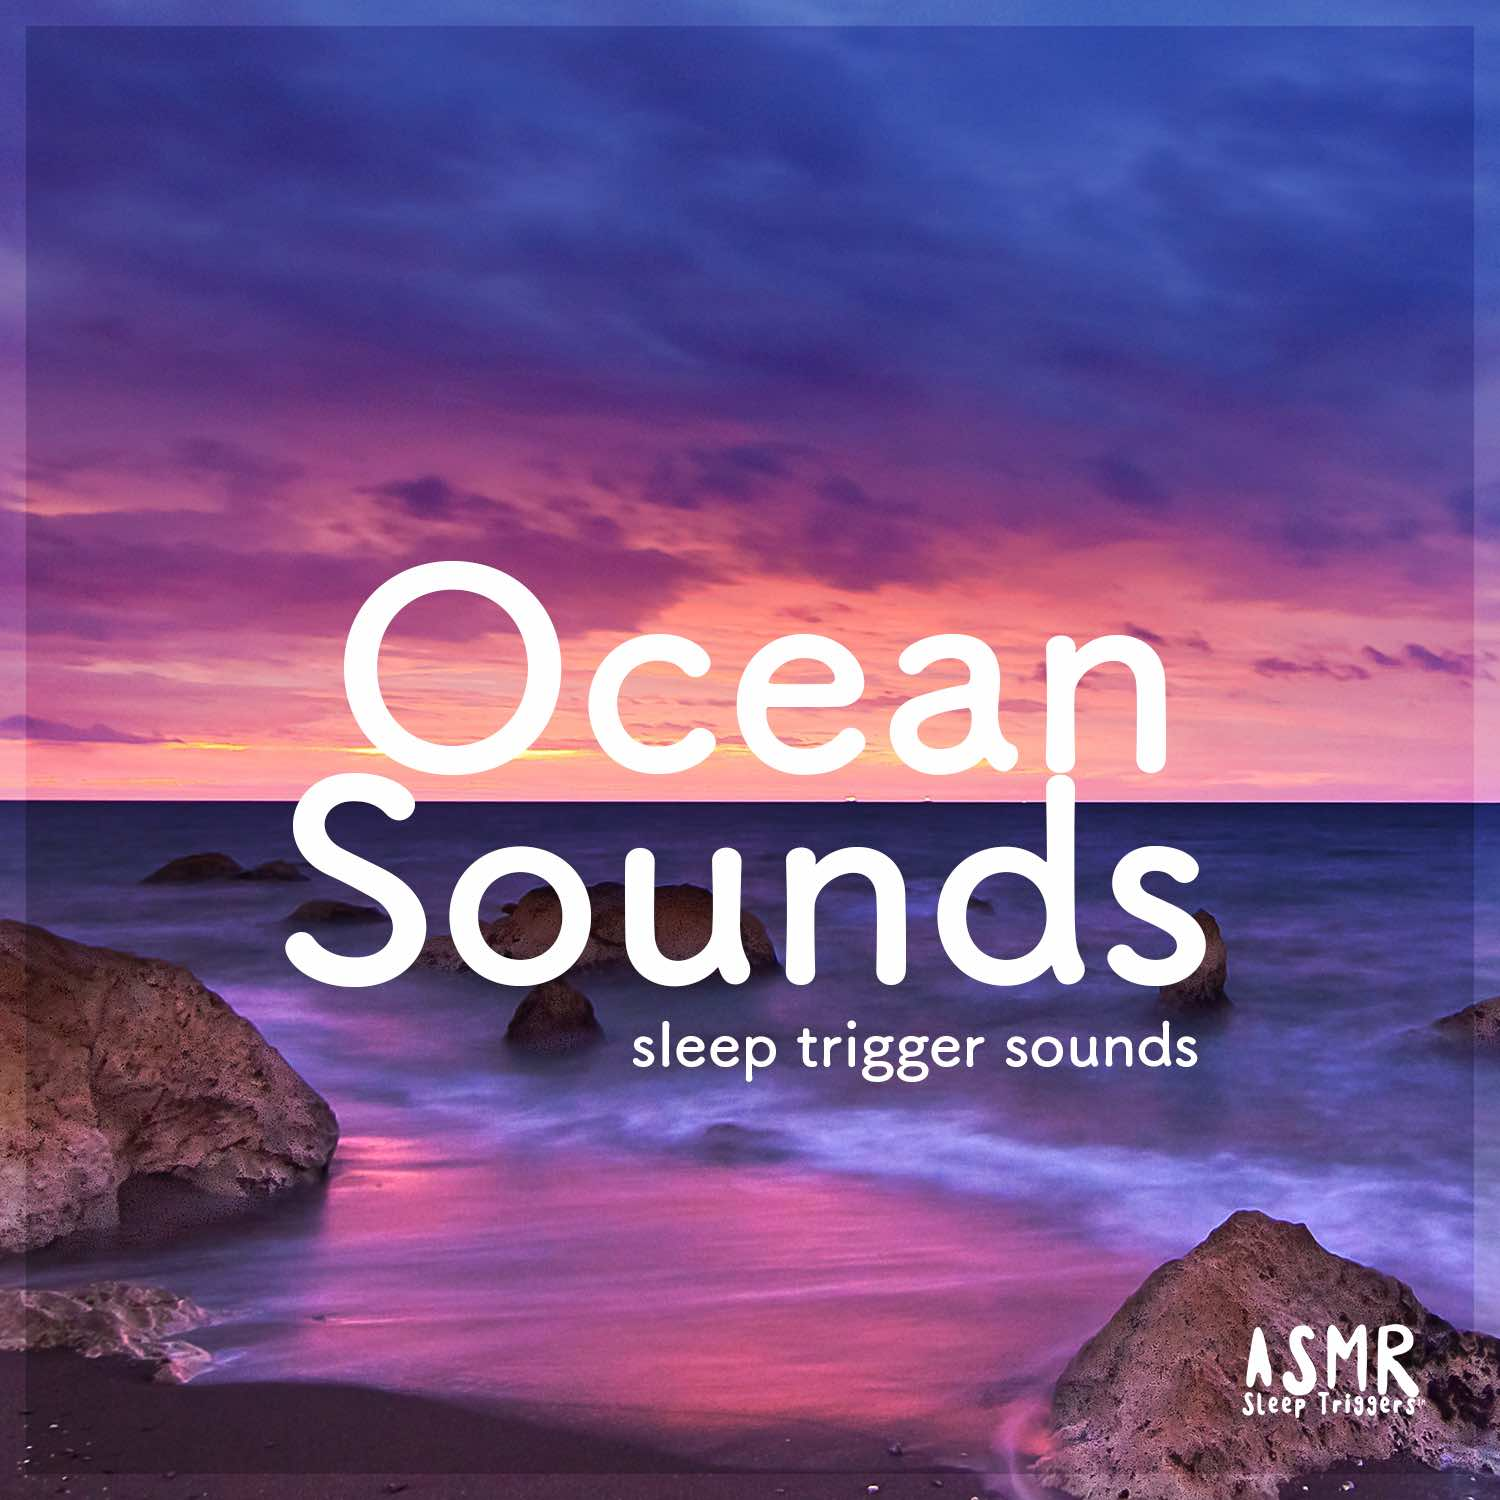 Ocean Sounds 02_Small.jpg